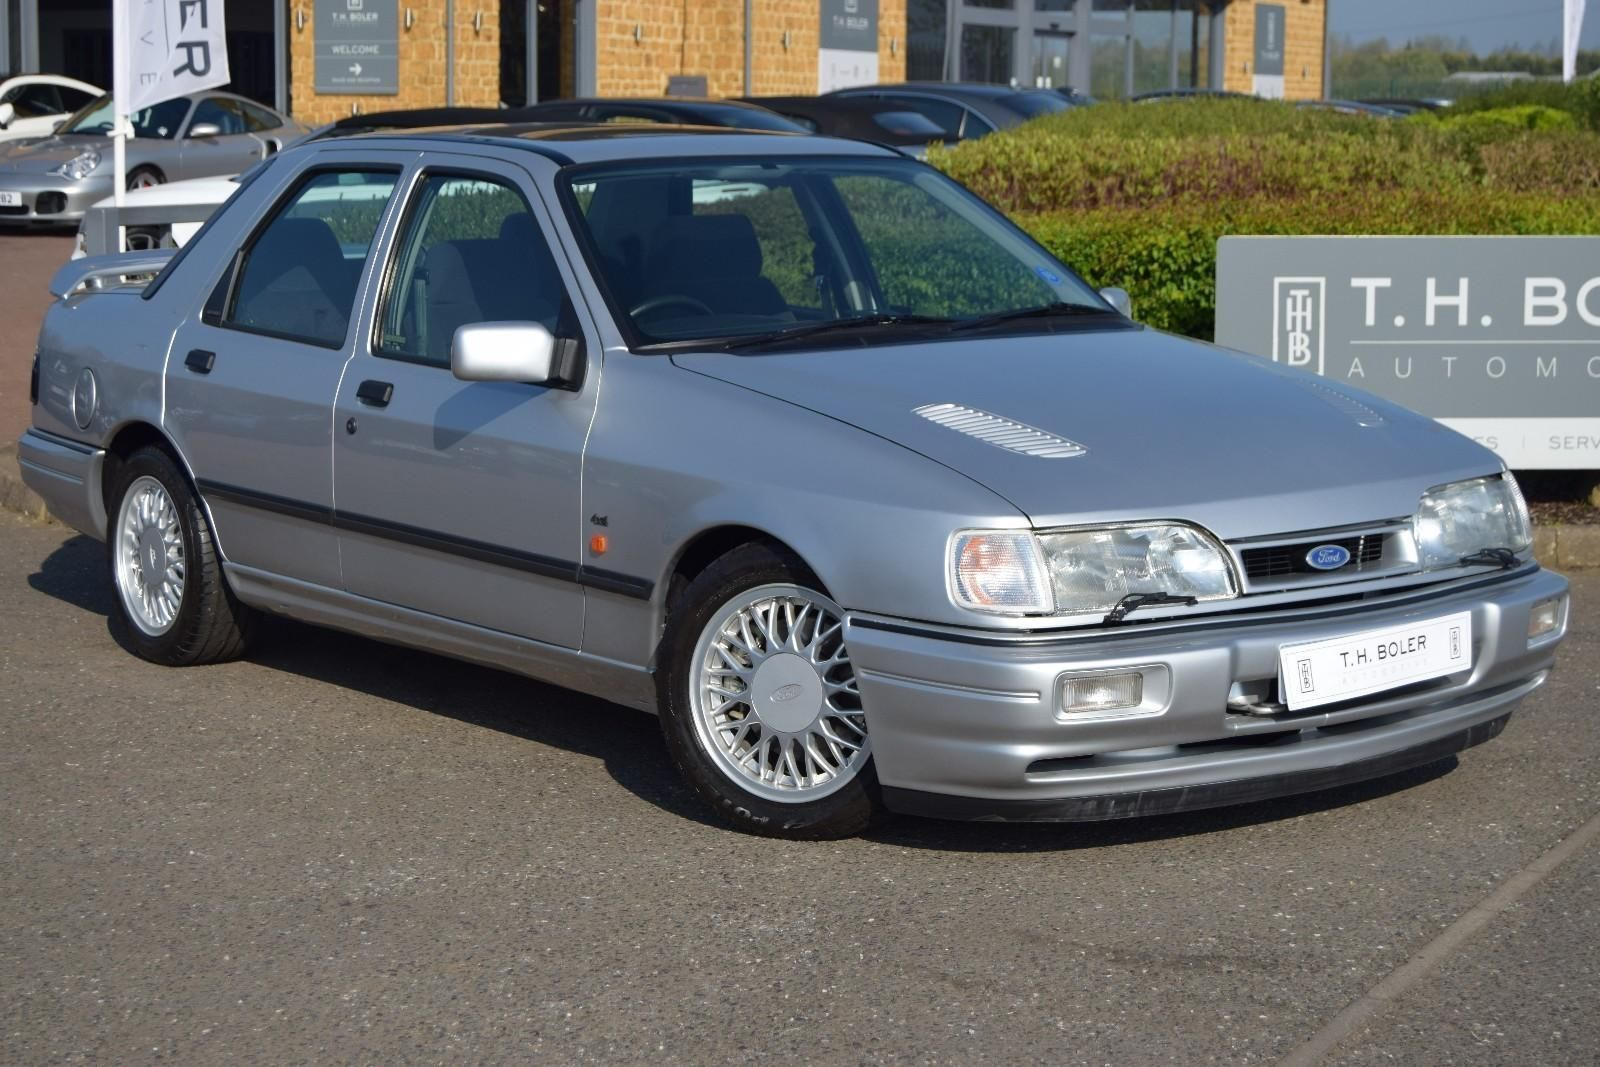 Looking for a 1992 ford sierra sapphire cosworth 4x4 petrol silver manual?  This one is